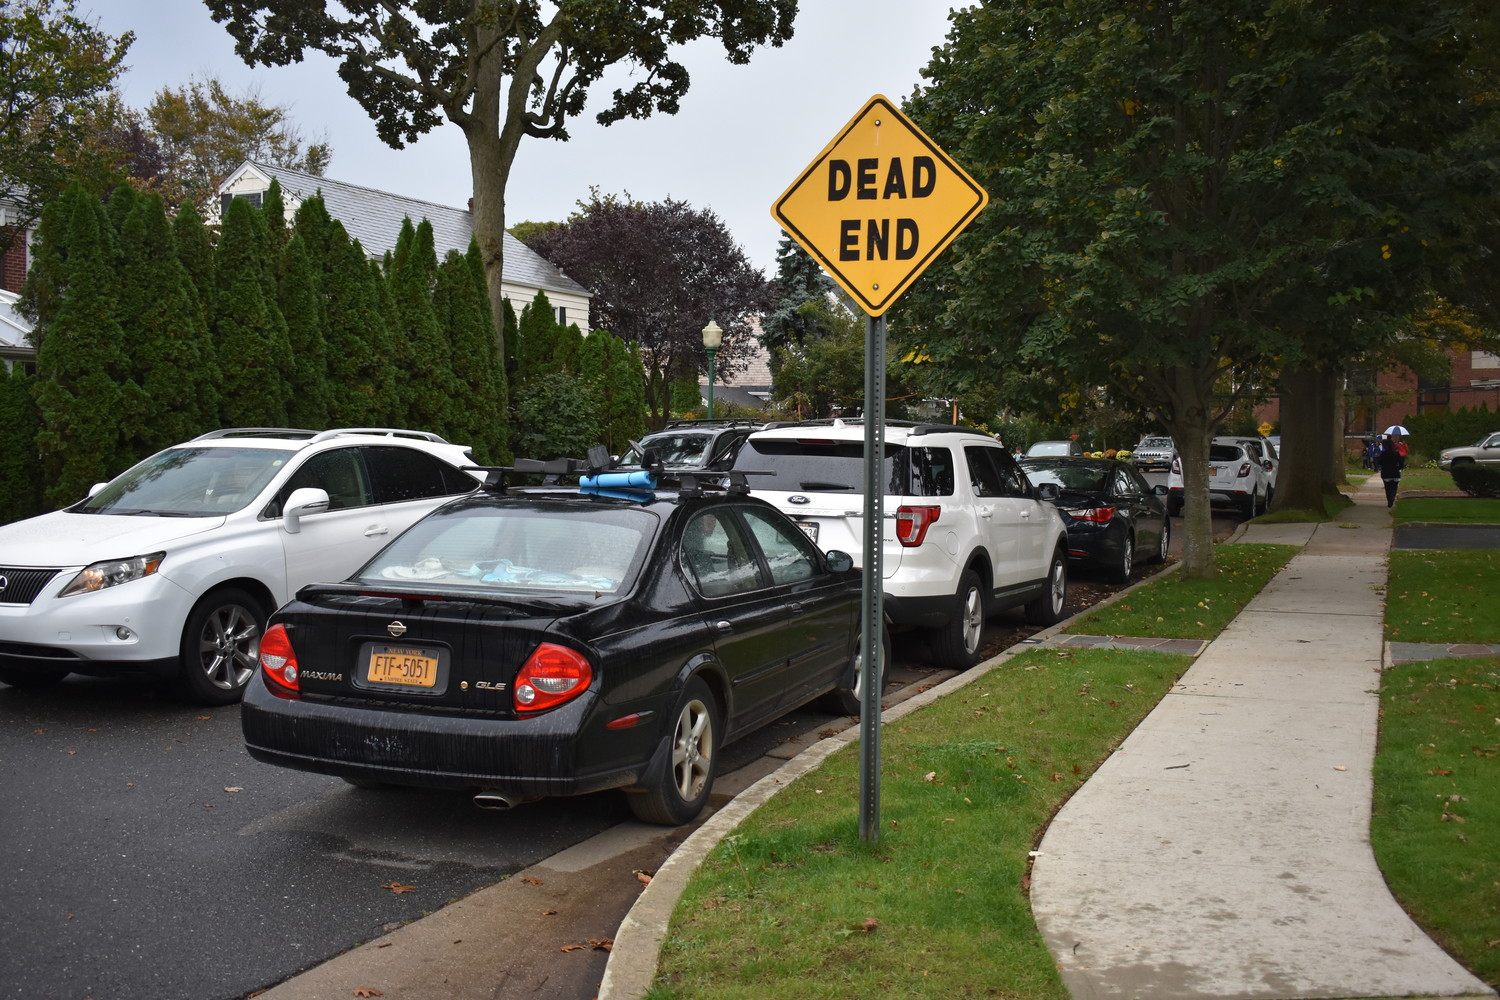 Bradford Court becomes congested as staff members and parents park and enter Hewitt Elementary School through a gate at the end of the dead-end street.